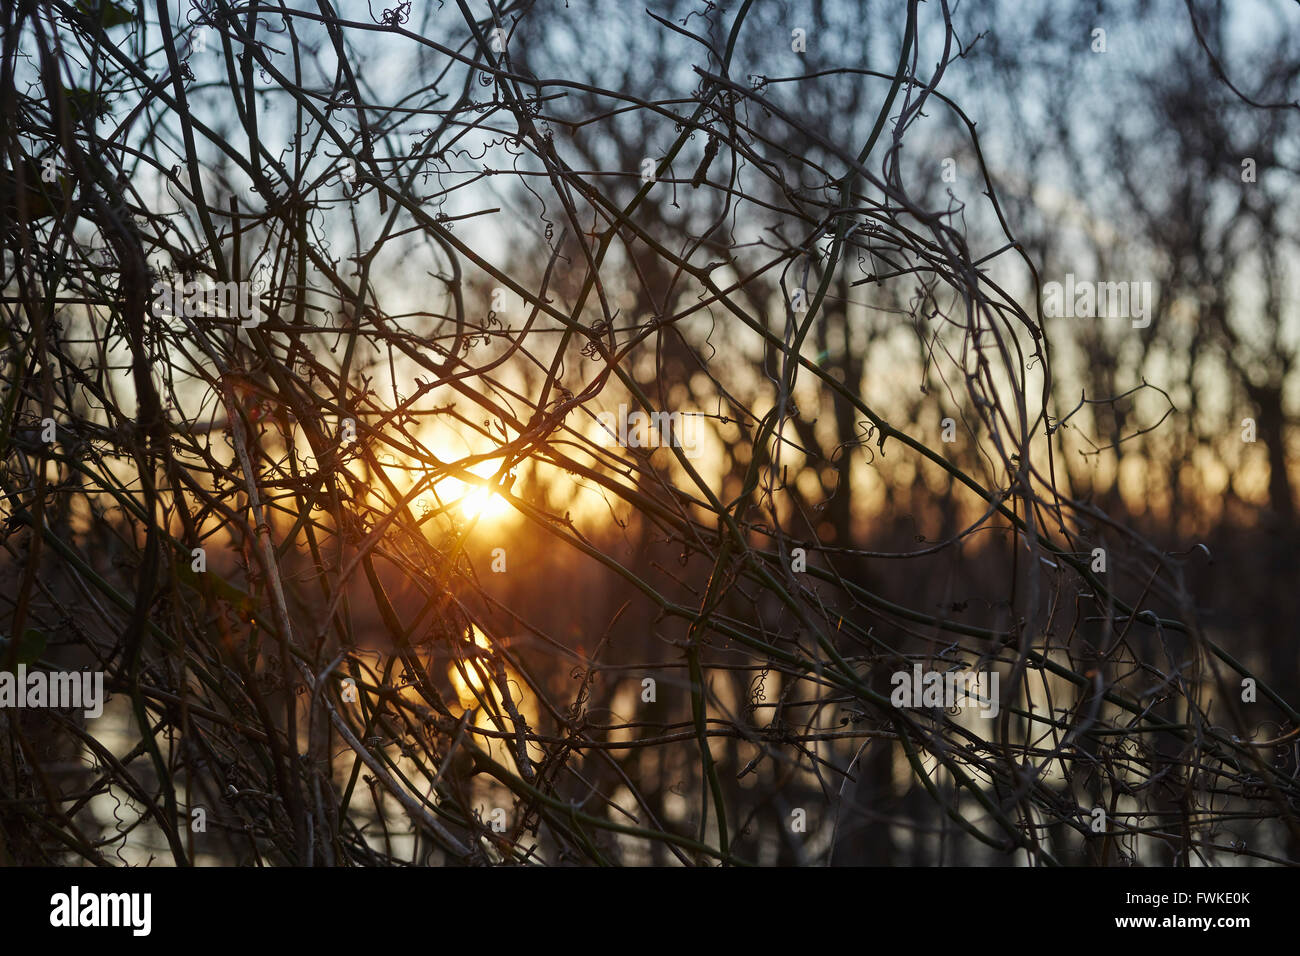 Mississippi River and scrub woods at sunset near Vicksburg, MS, USA - Stock Image